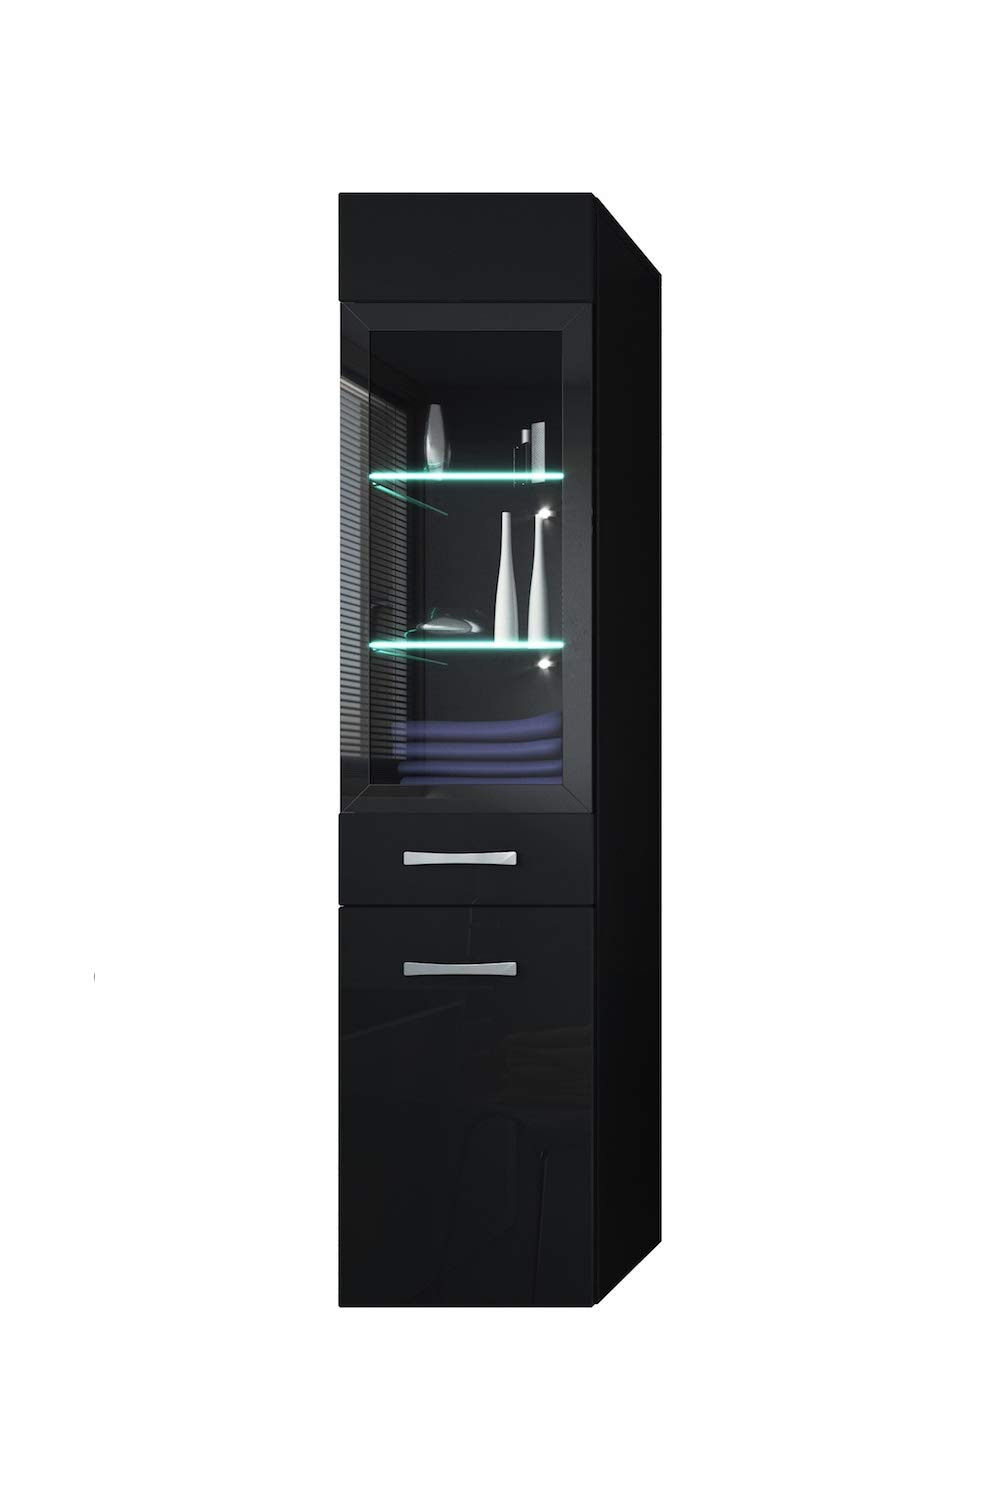 Tall Black Cabinet with Doors Awesome Storage Cabinet Rio 131cm Height Bodega Grey Storage Cabinet Tall Cupboard Bathroom Furniture